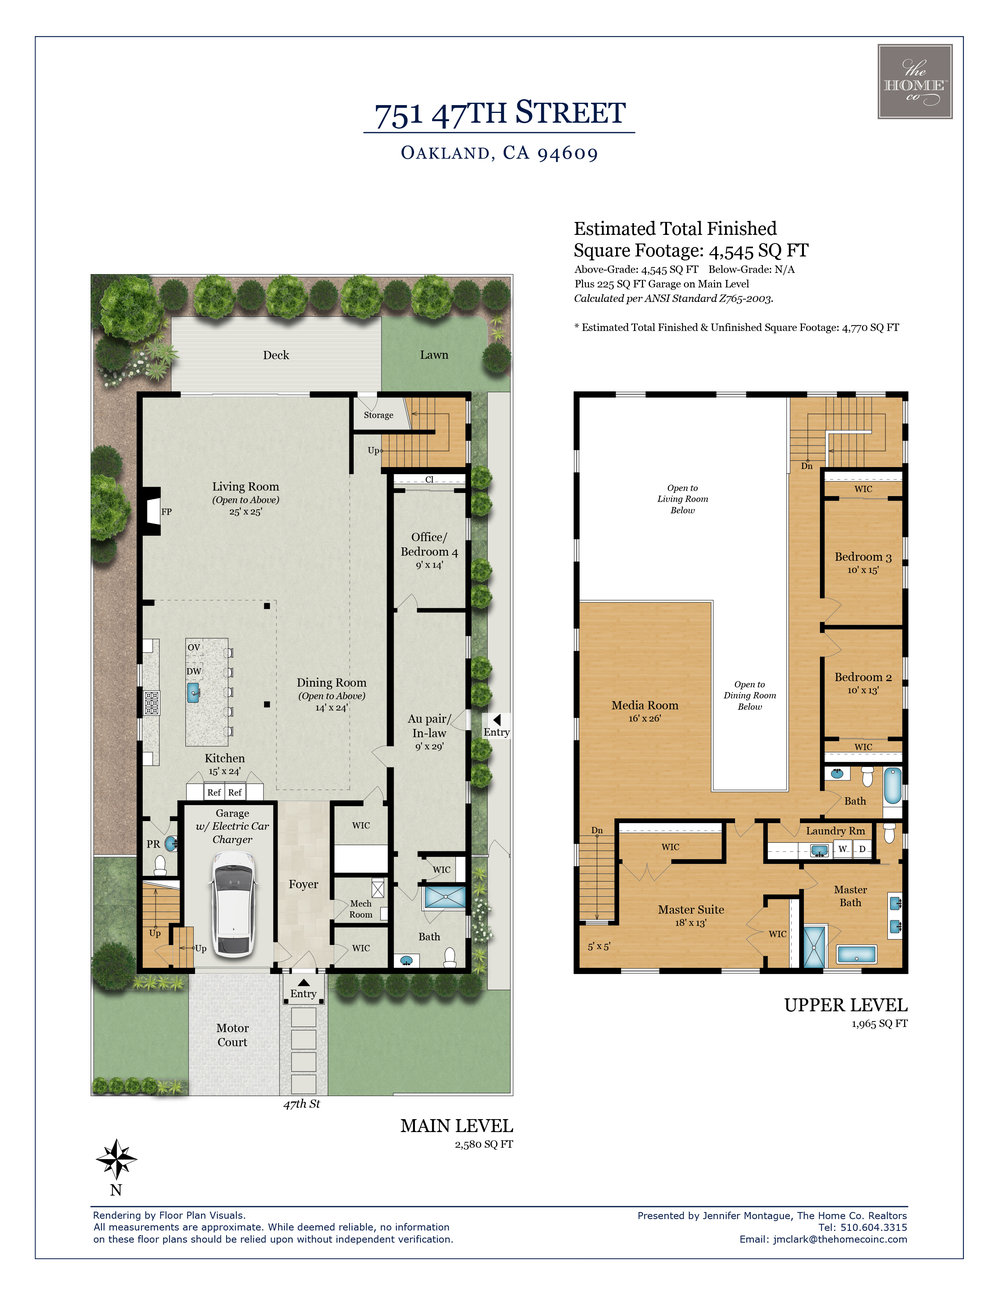 751 47th Street Temescal Oakland Floor Plan